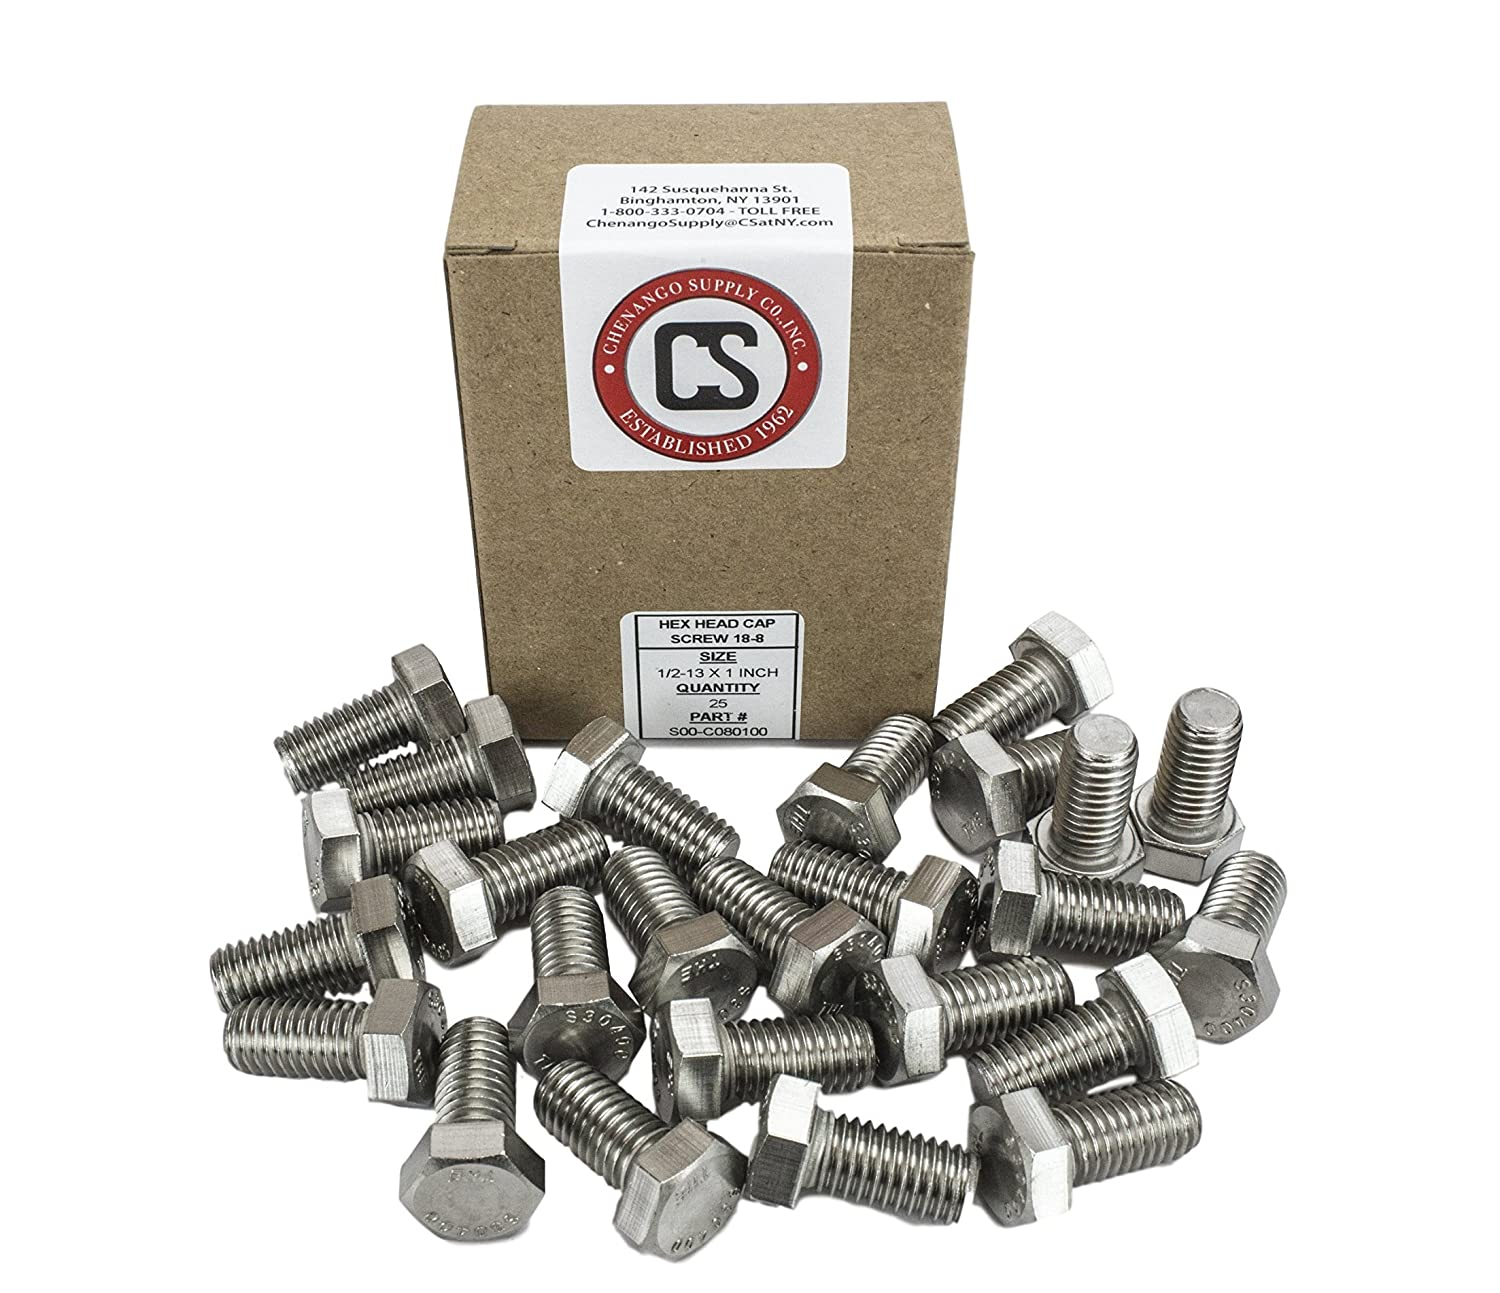 Chenango Supply 1//2 Flat Washer Stainless 1//2 Flat Washer 50 pieces Bolt Lengths Available in Listing 304 Stainless Steel